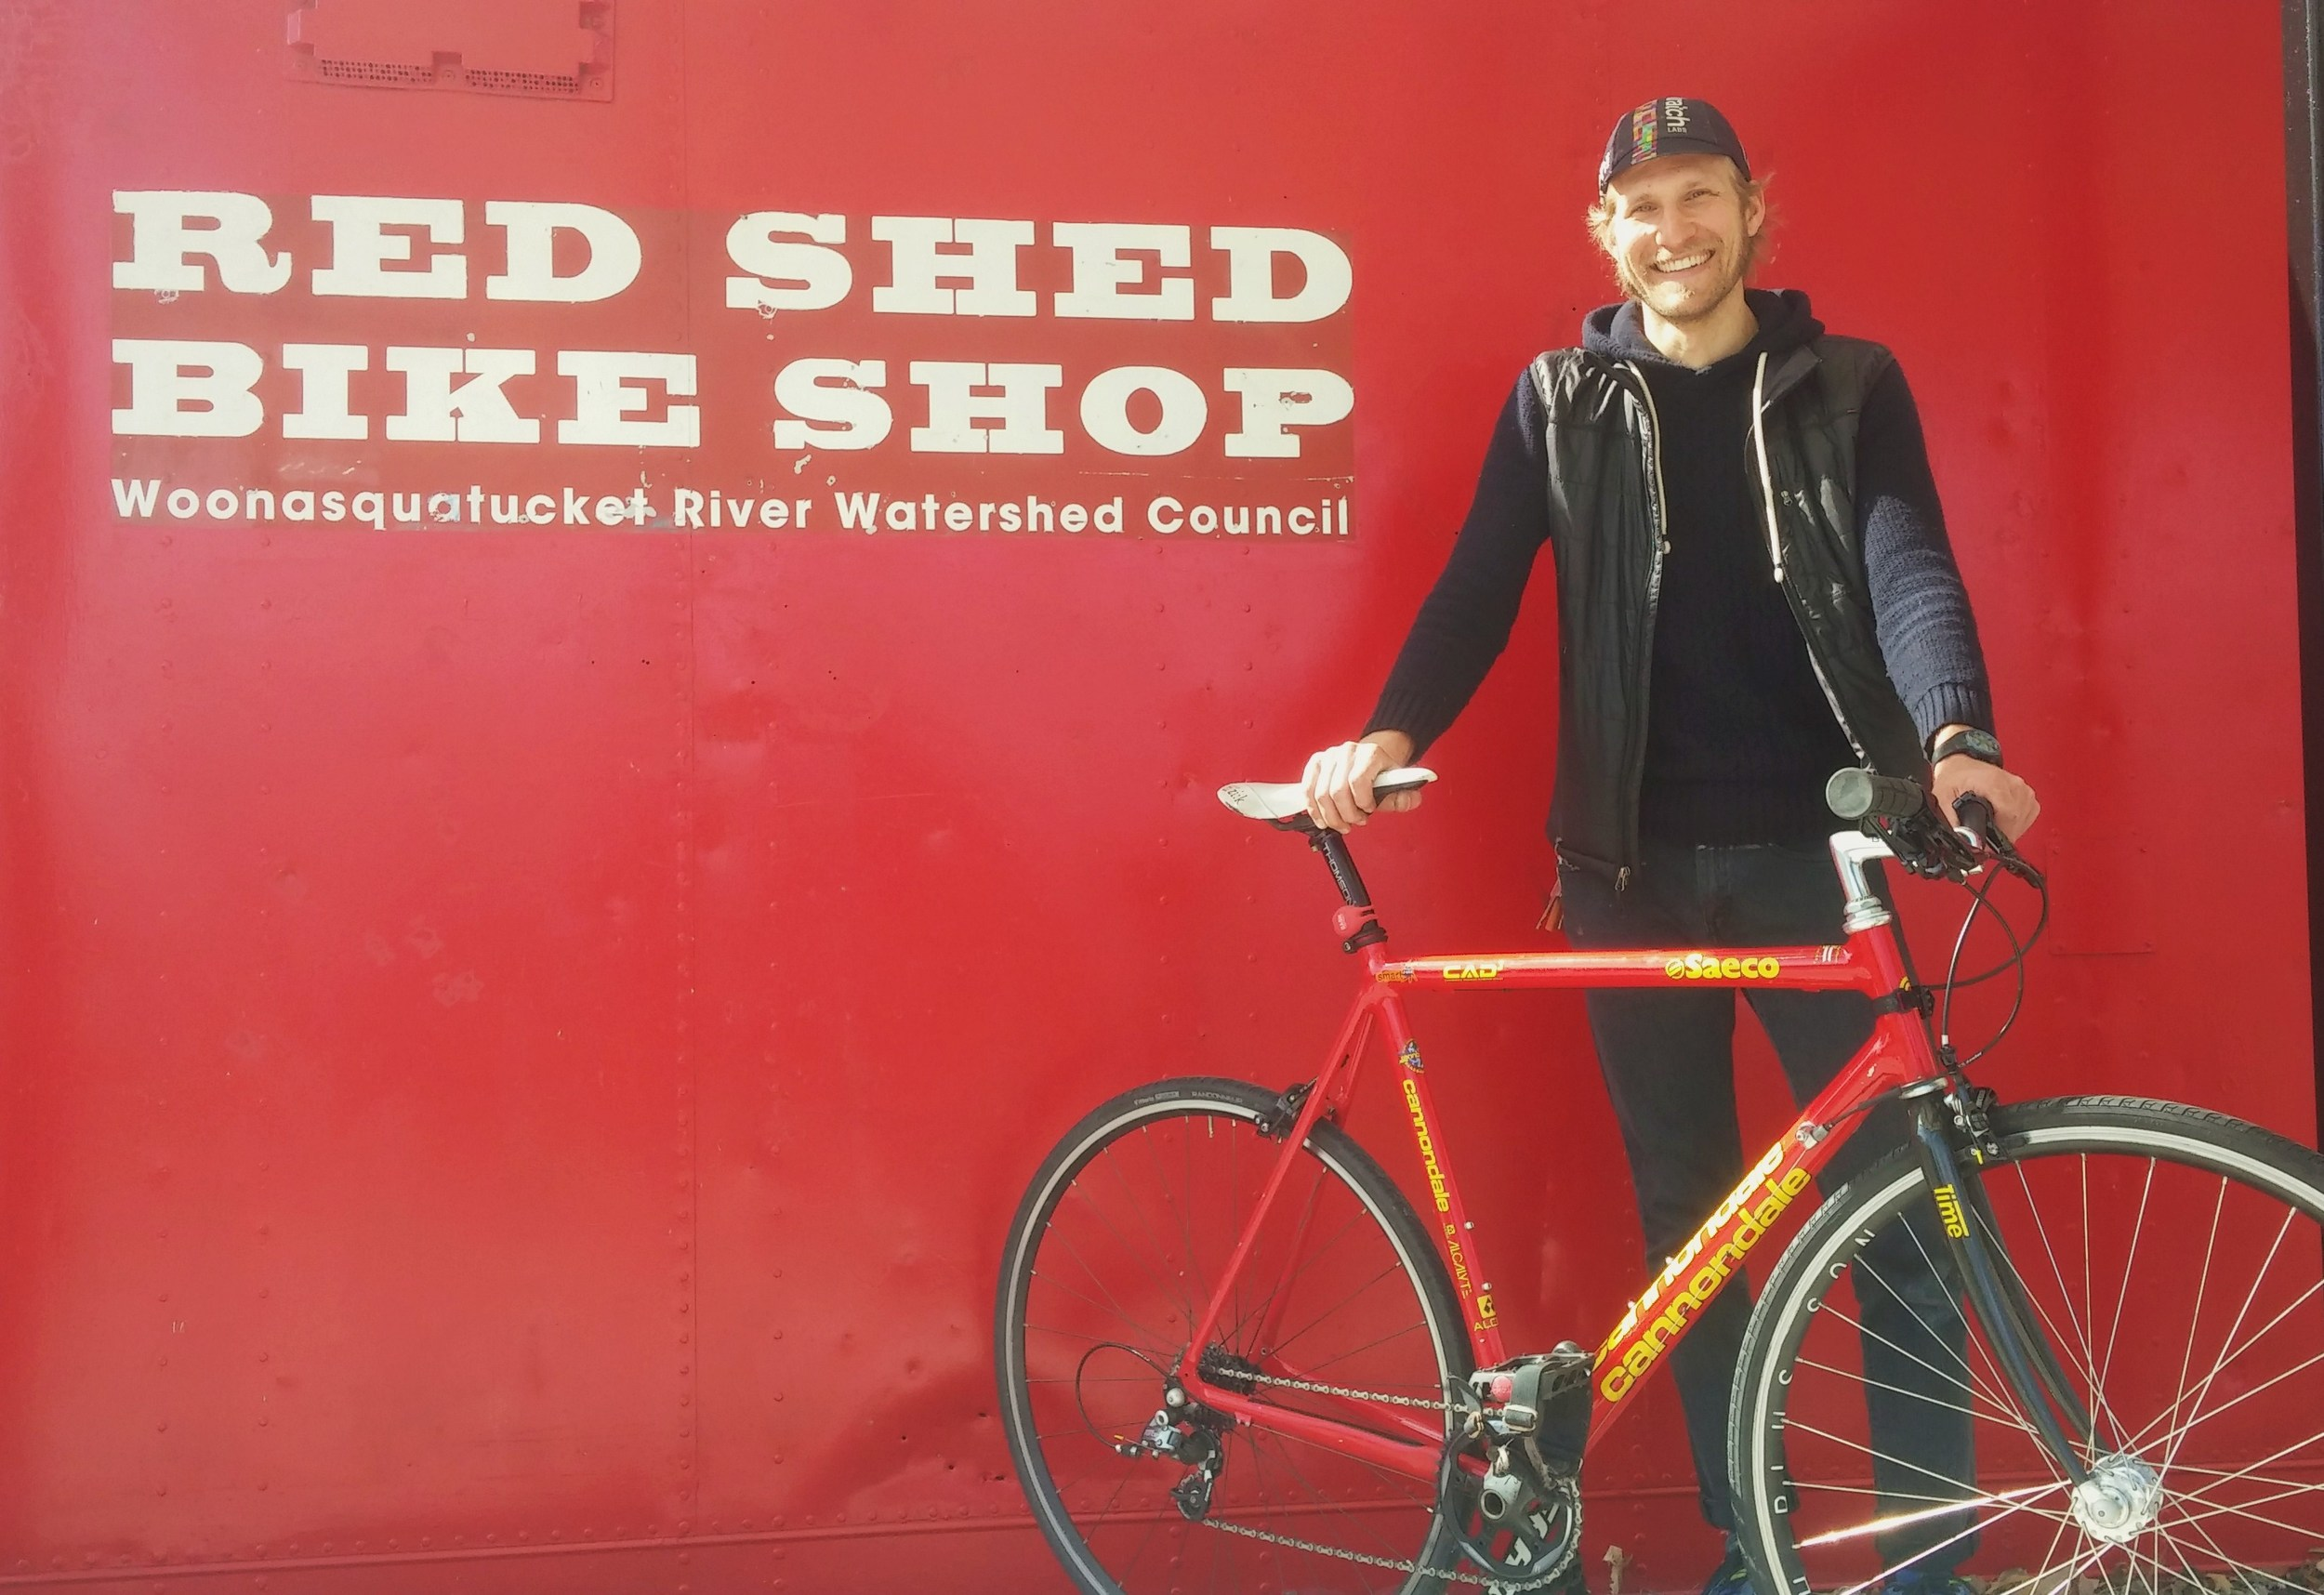 Donny Green manages the Red Shed Bike Shop and a related bike-themed summer camp in Providence's Olneyville neighborhood. (Kevin Proft/ecoRI News)